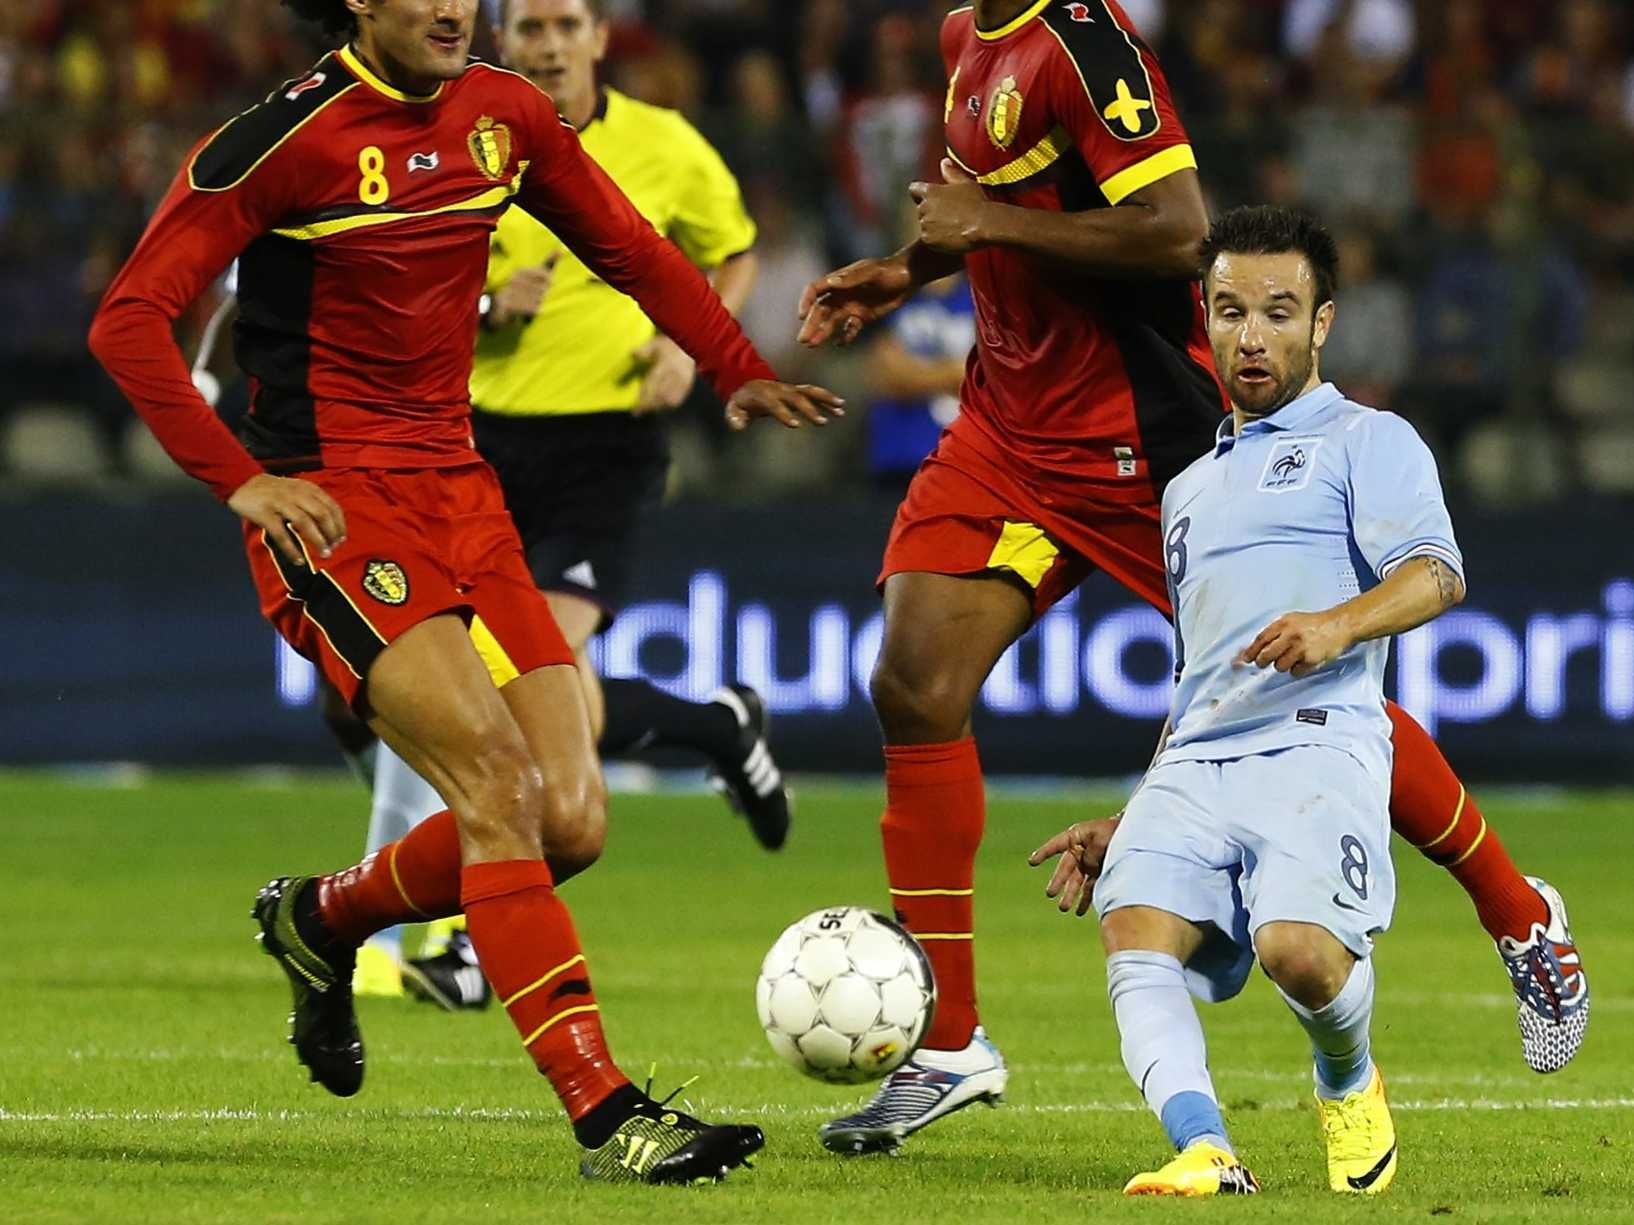 A Mind Blowing A French Soccer Player Looking Absurdly